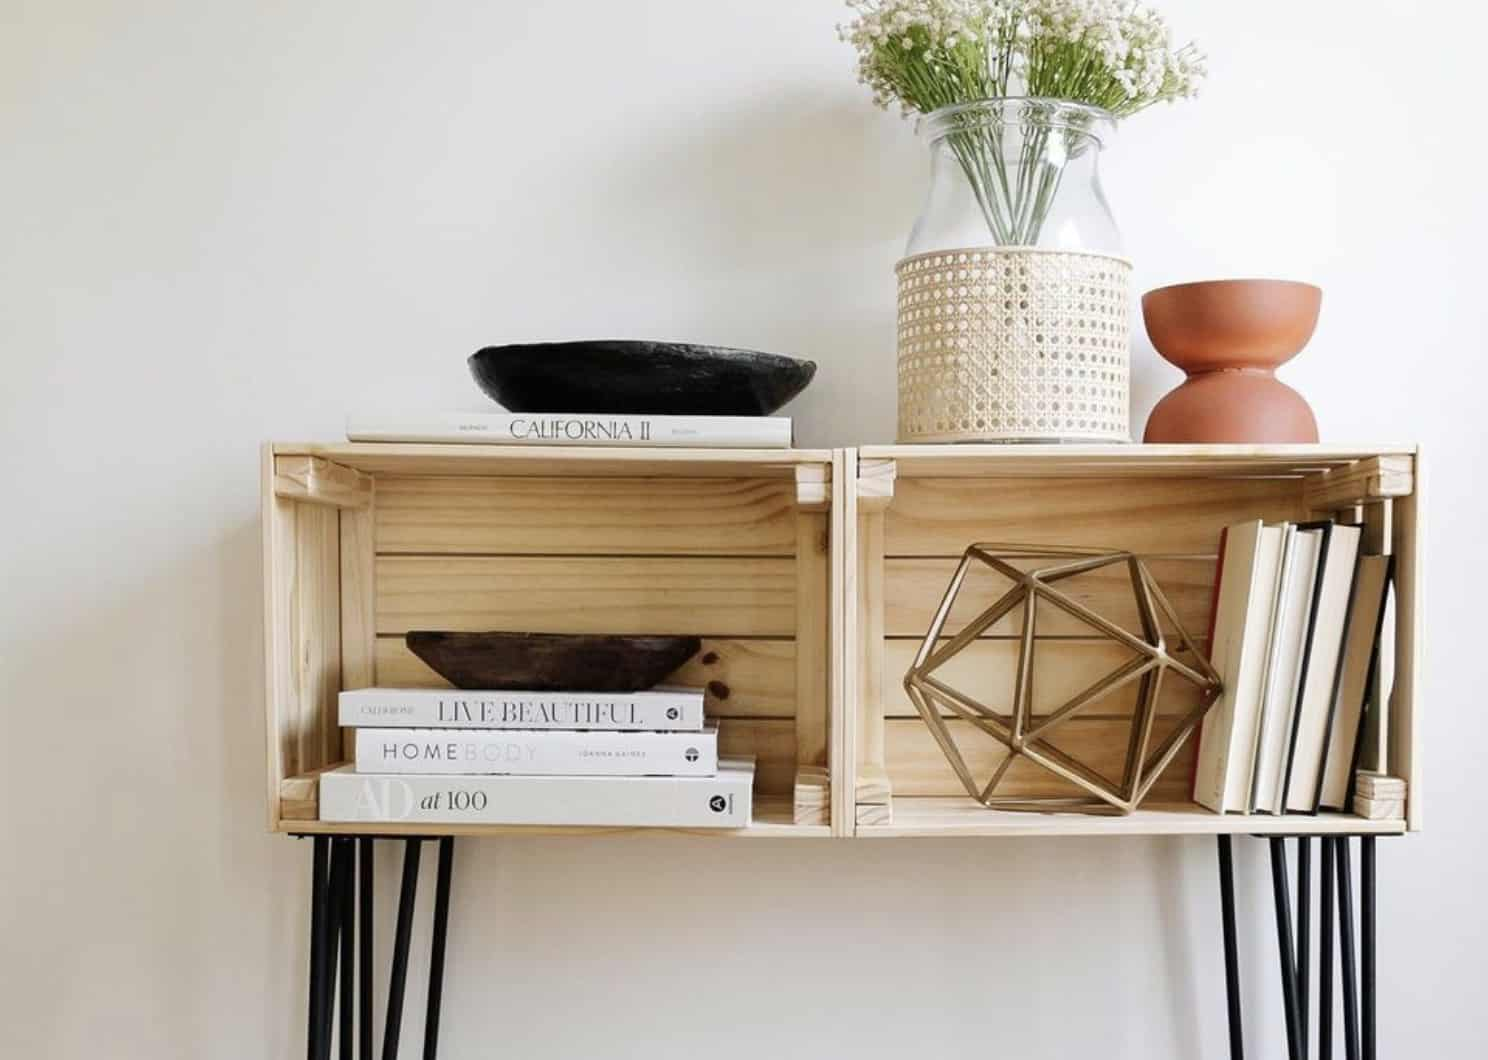 Try These Ikea Hacks For A Home Makeover On A Budget